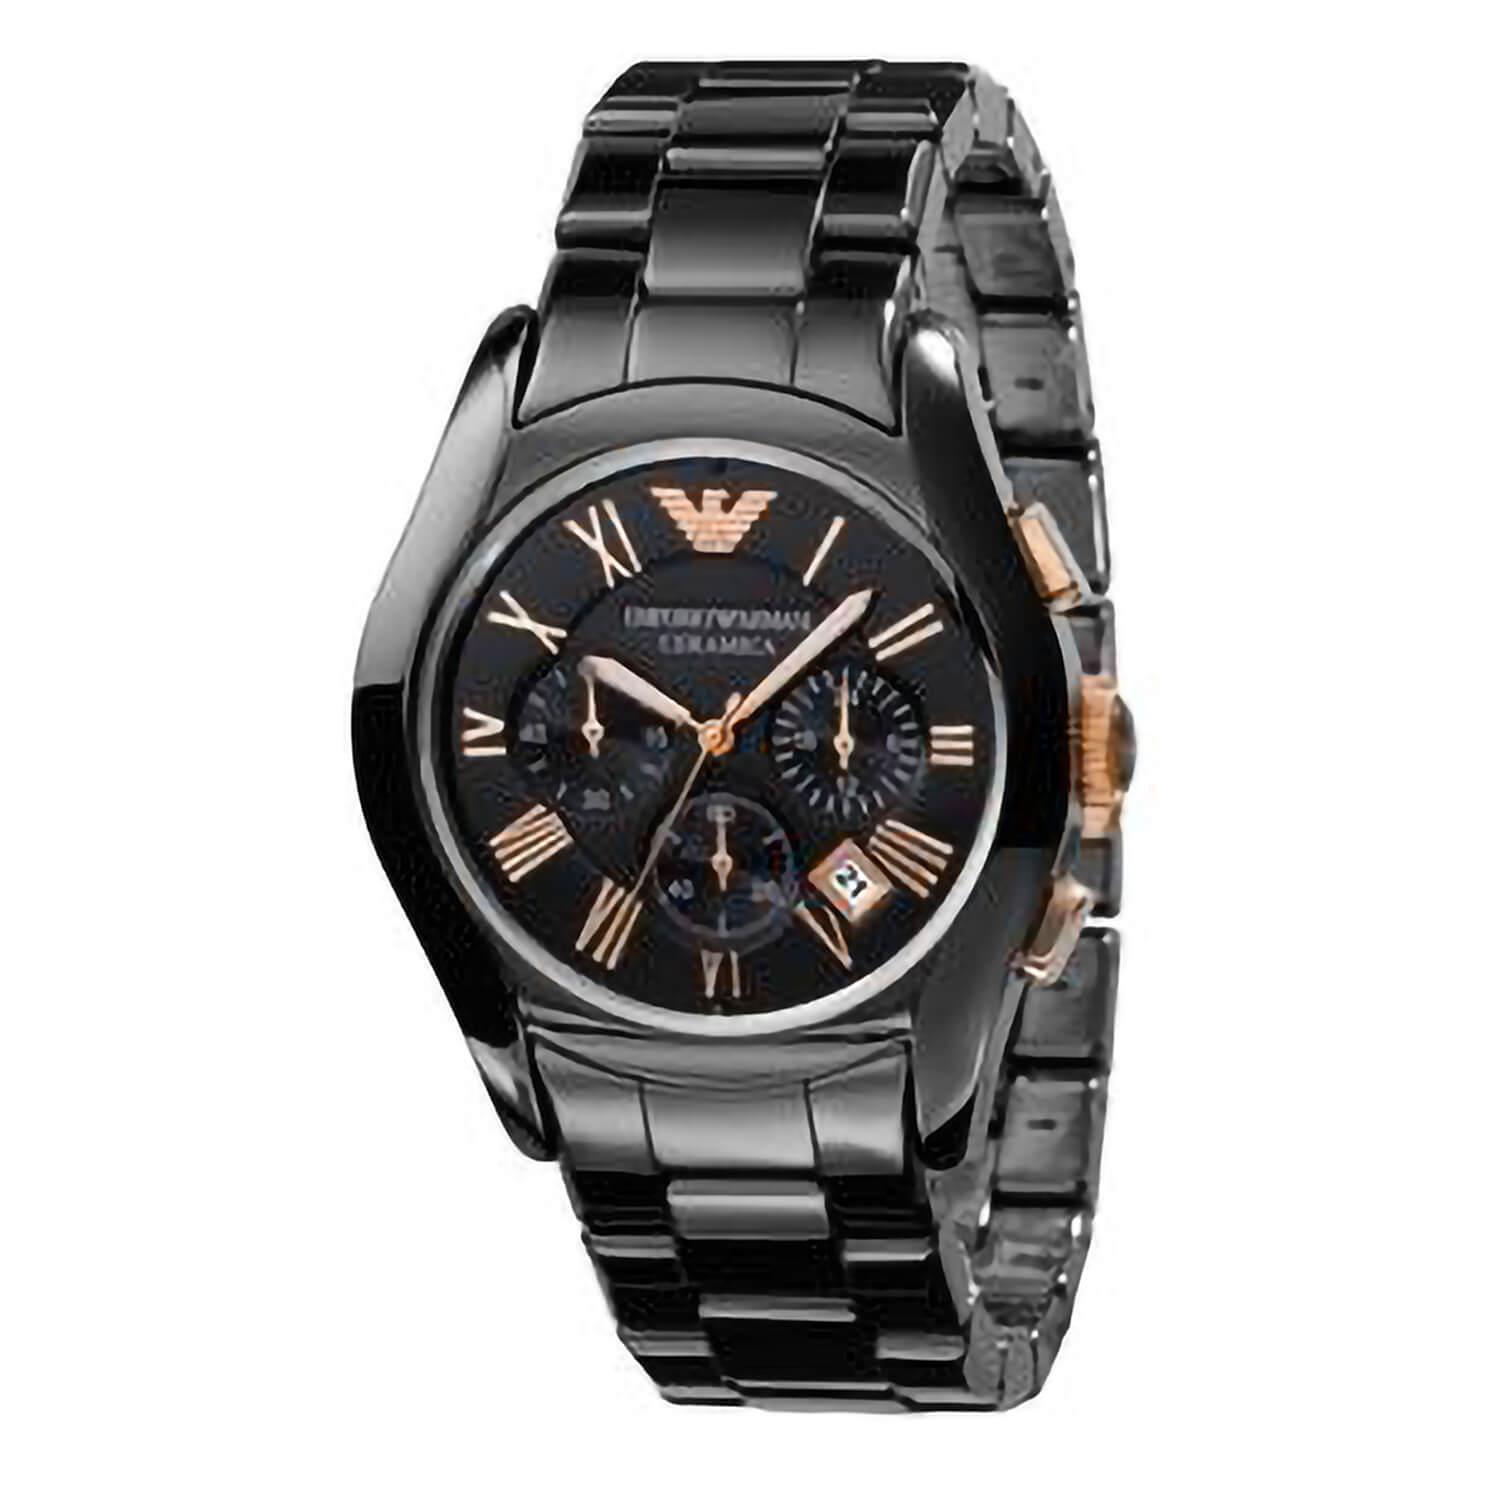 Emporio Armani Ceramica men's chronograph black bracelet watch